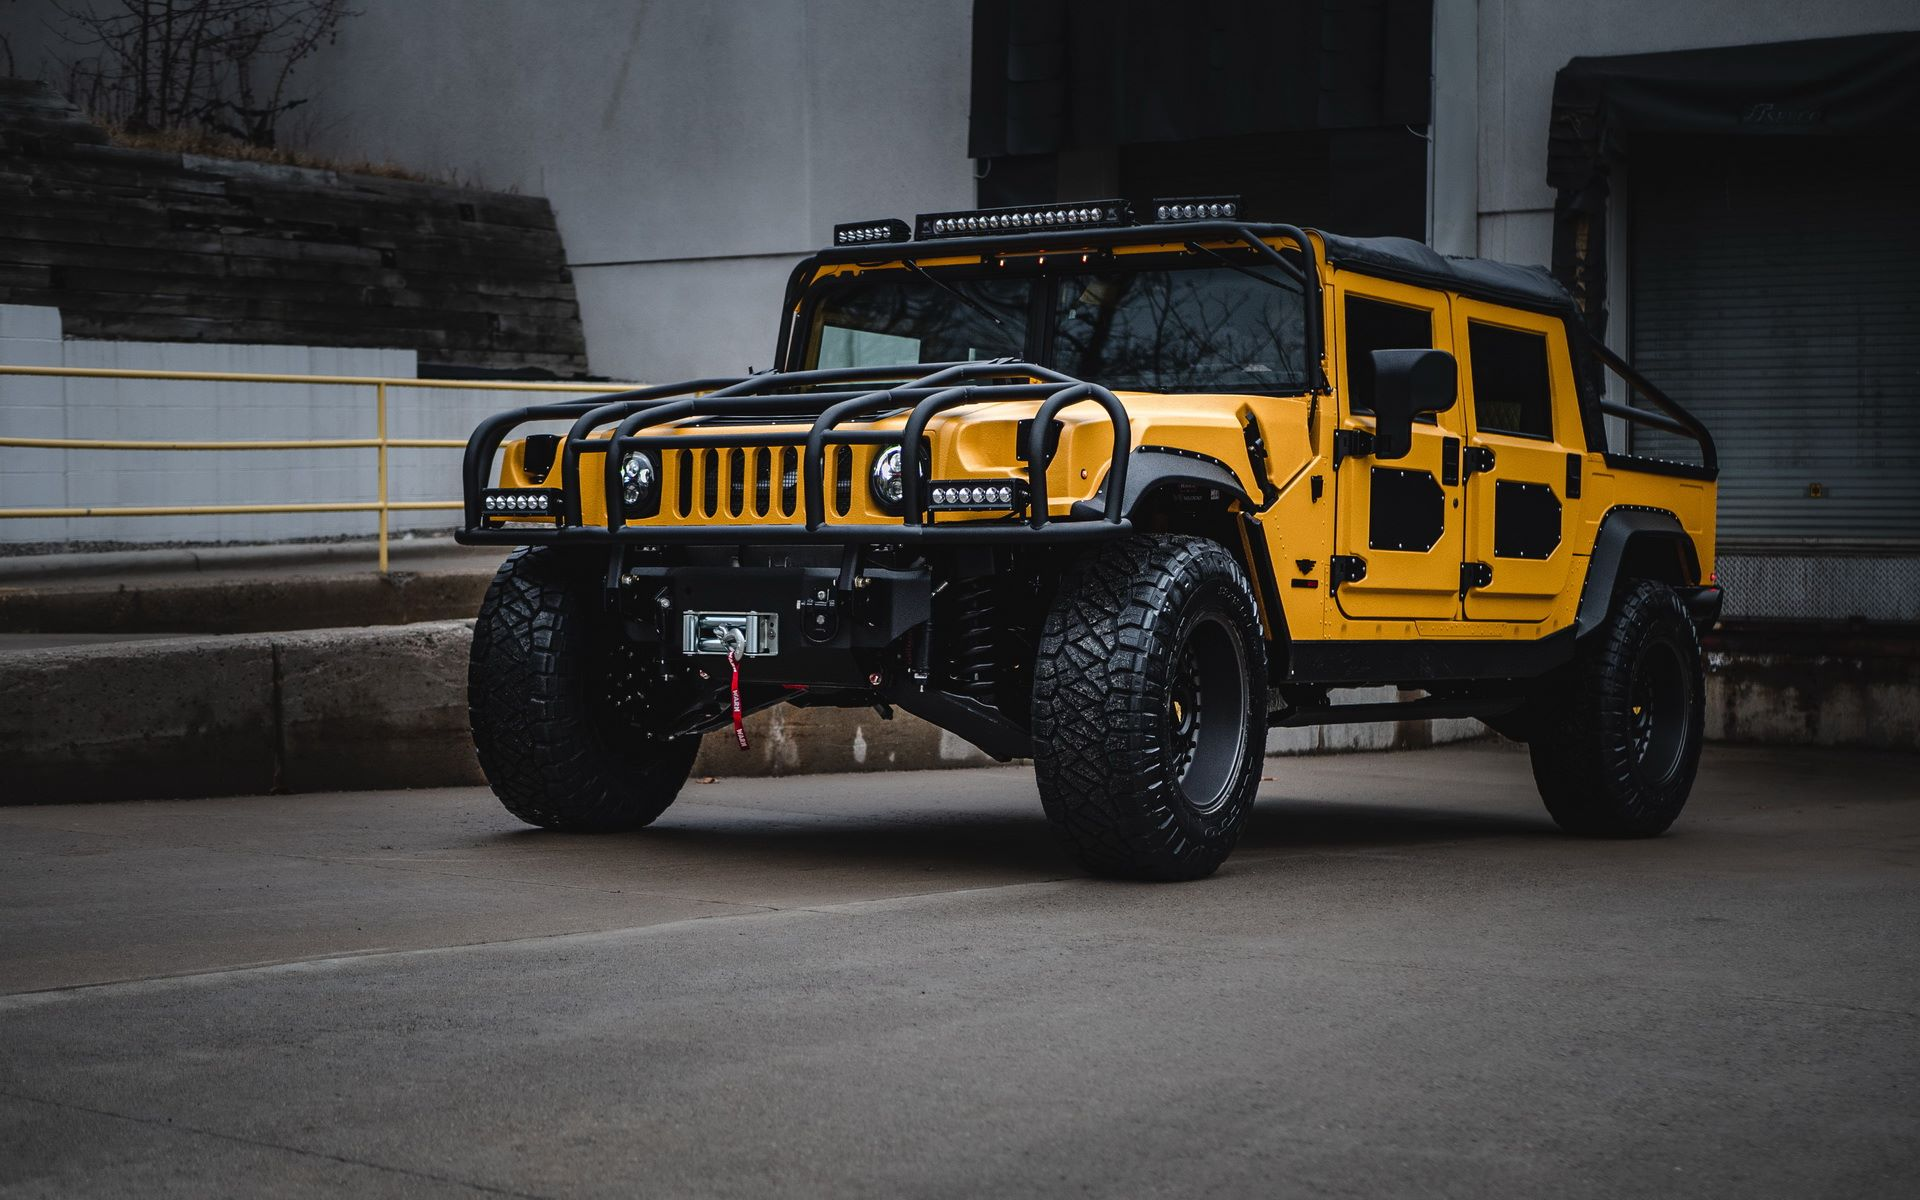 Hummer-M1-R-by-Mil-Spec-5